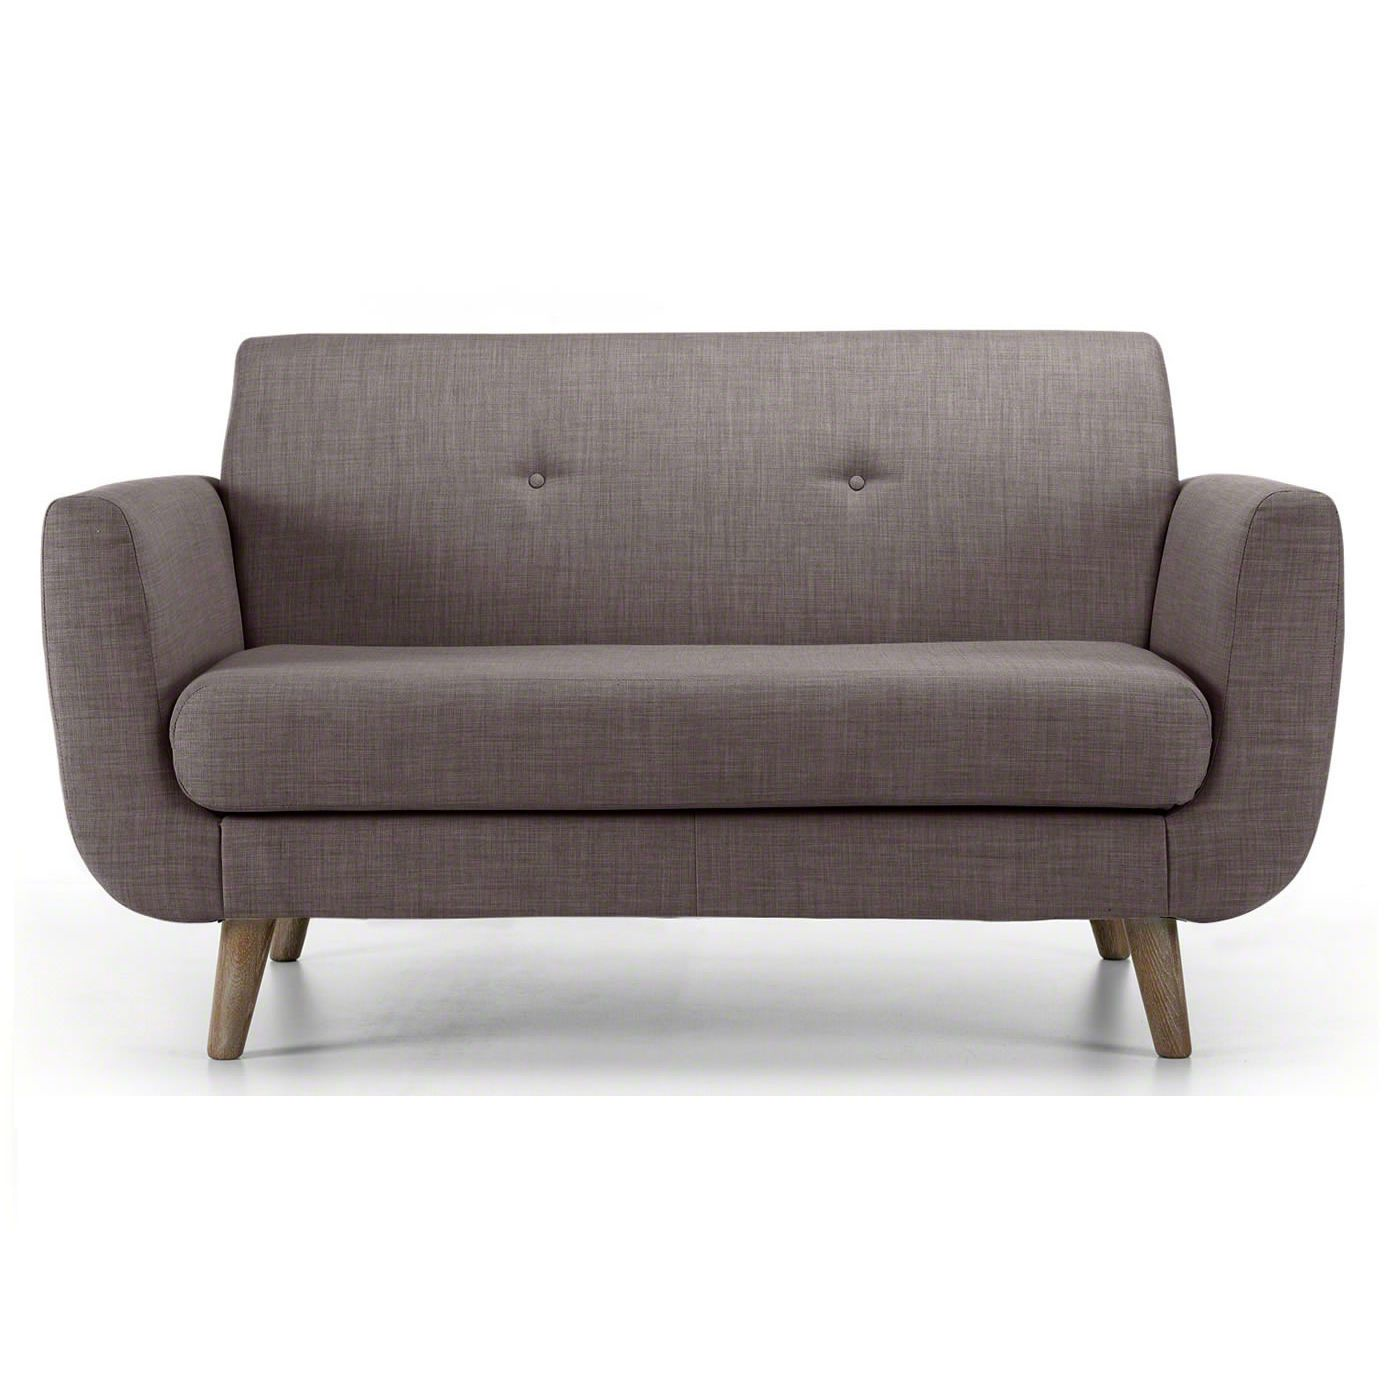 Macey 2 Seater Sofa  Sofasworld 549